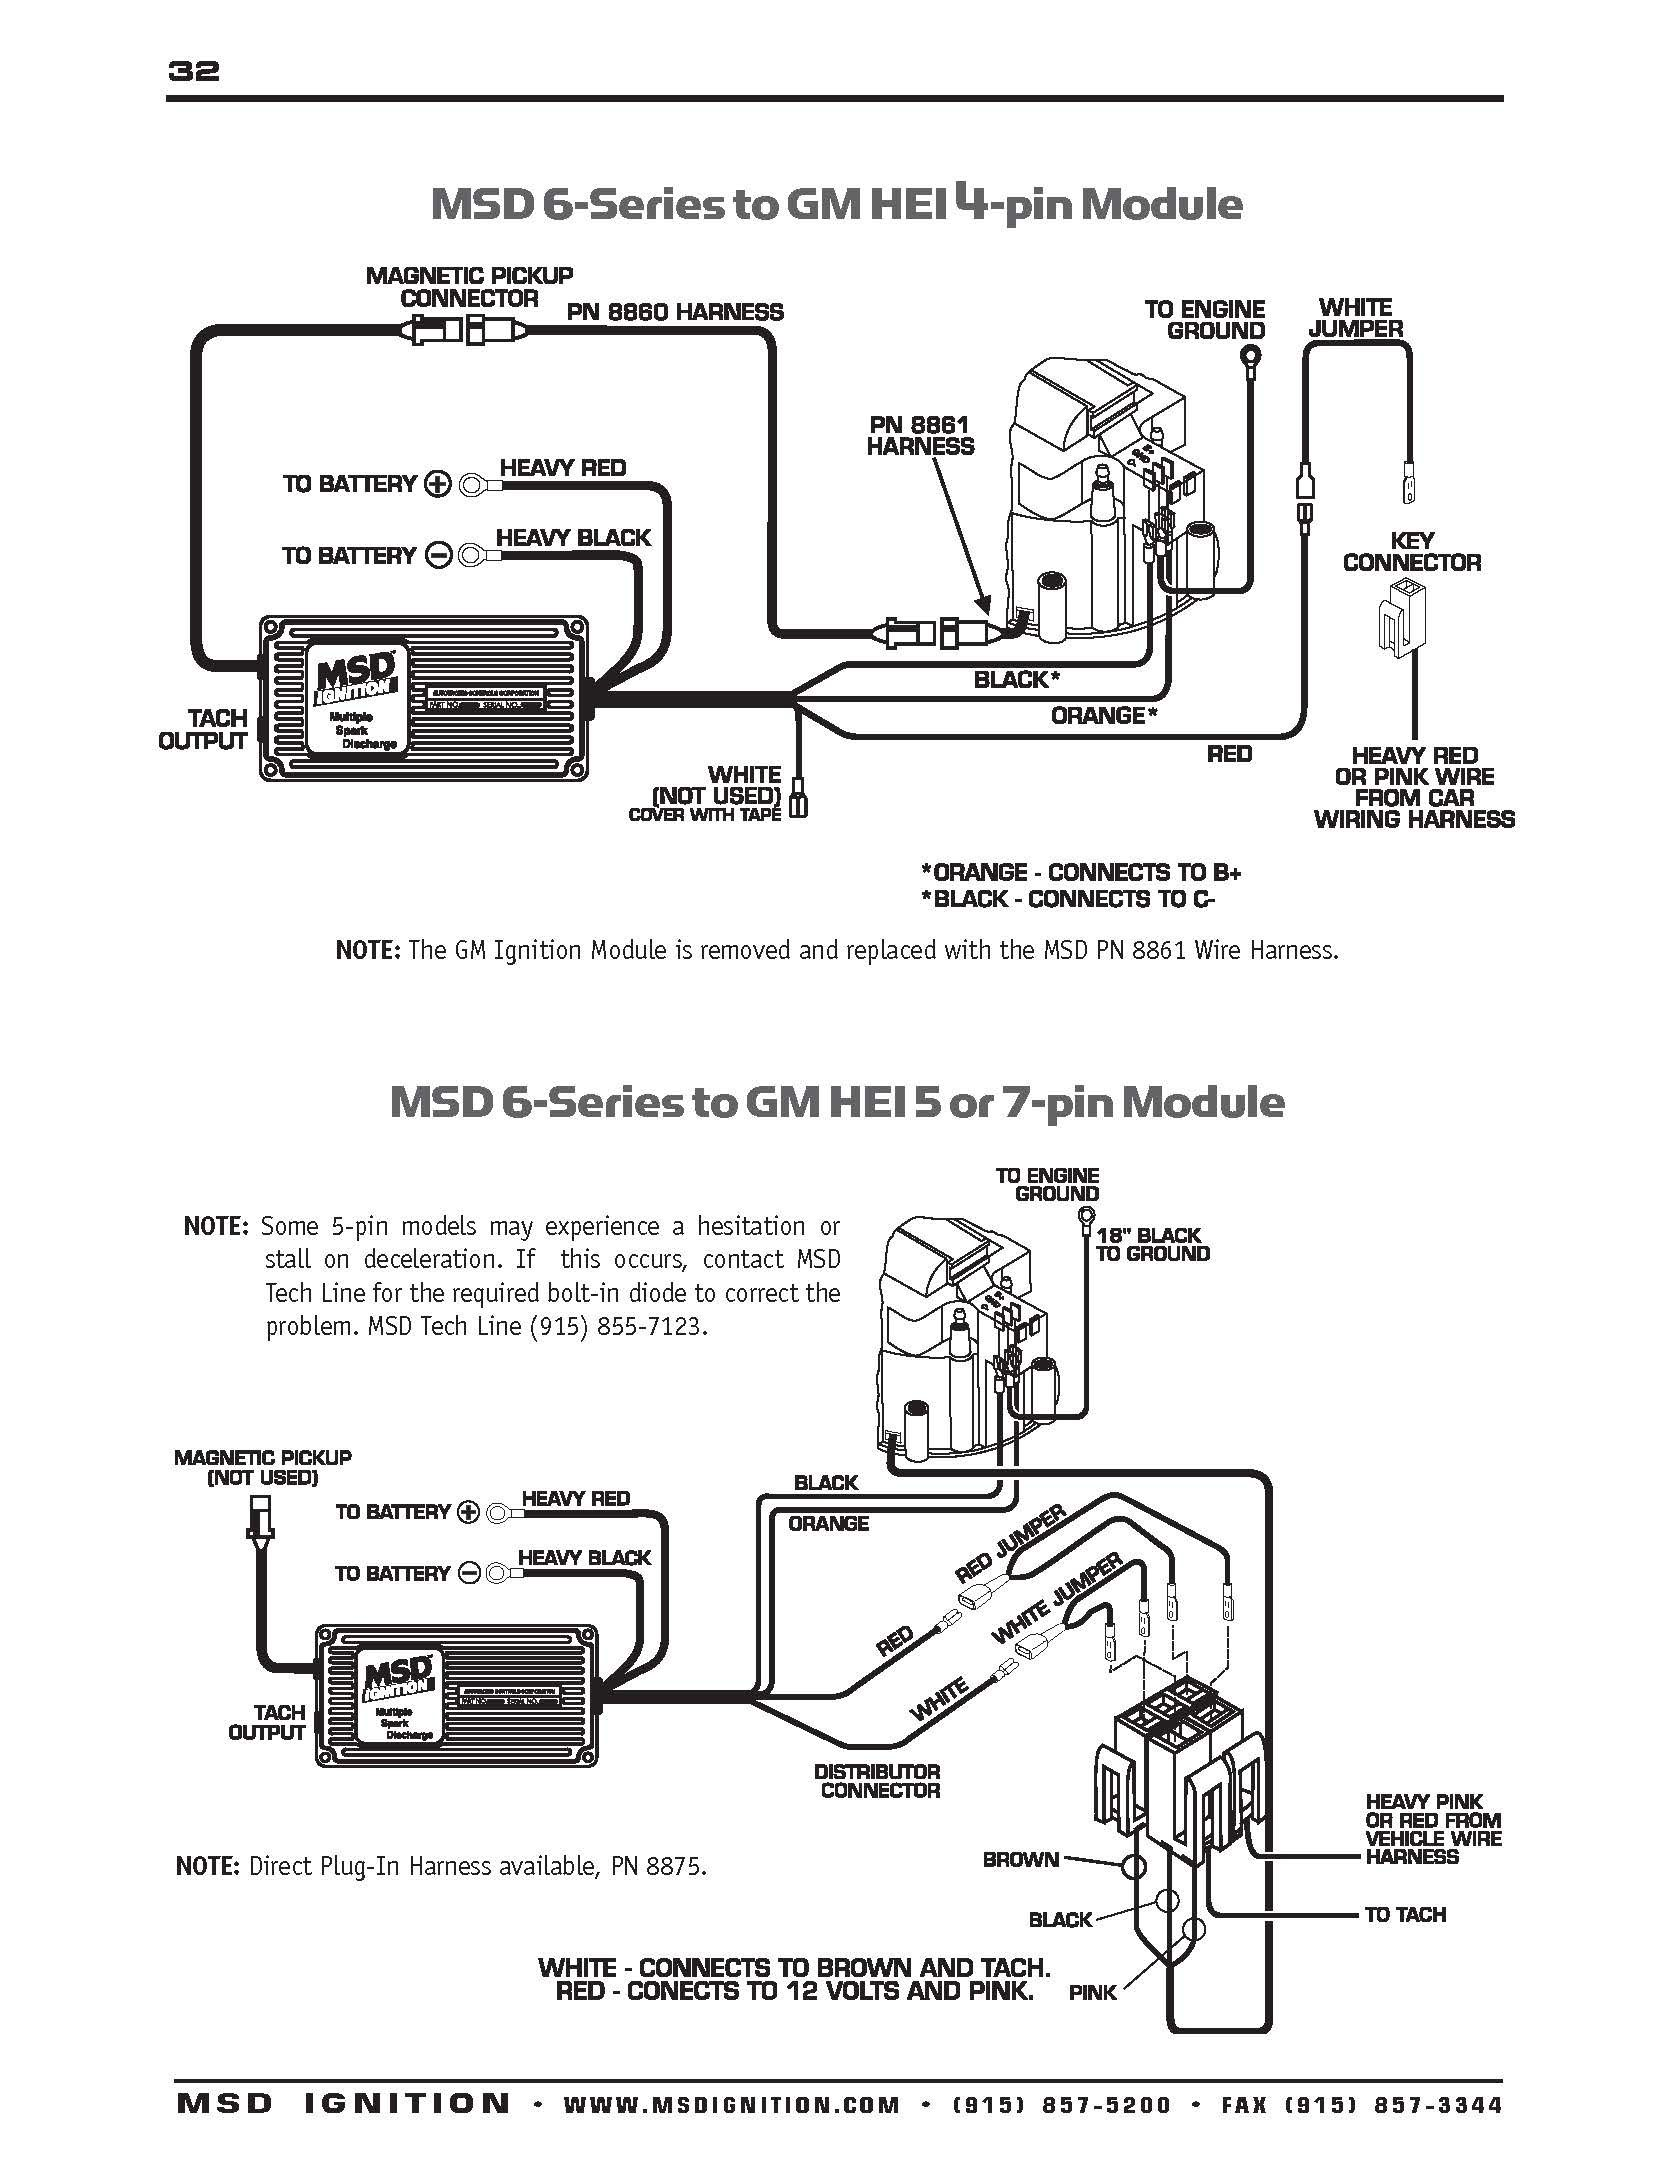 medium resolution of msd ignition wiring diagrams 1966 chevelle diagram automotive spark plug wire diagram 2001 dodge ram 1500 ignition wire diagram